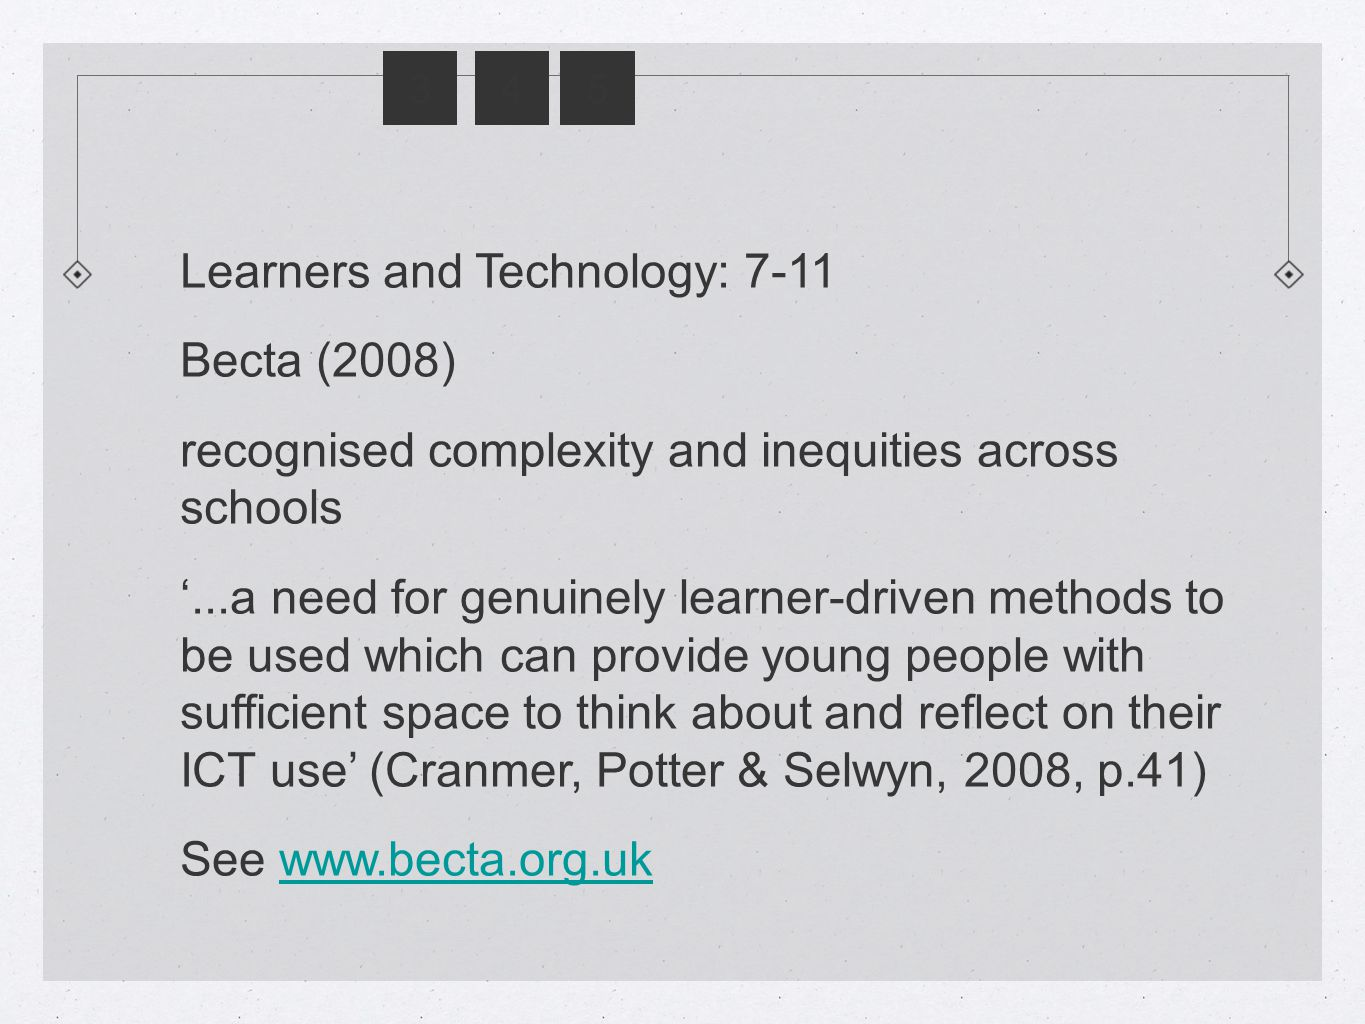 345 Learners and Technology: 7-11 Becta (2008) recognised complexity and inequities across schools '...a need for genuinely learner-driven methods to be used which can provide young people with sufficient space to think about and reflect on their ICT use' (Cranmer, Potter & Selwyn, 2008, p.41) See www.becta.org.ukwww.becta.org.uk